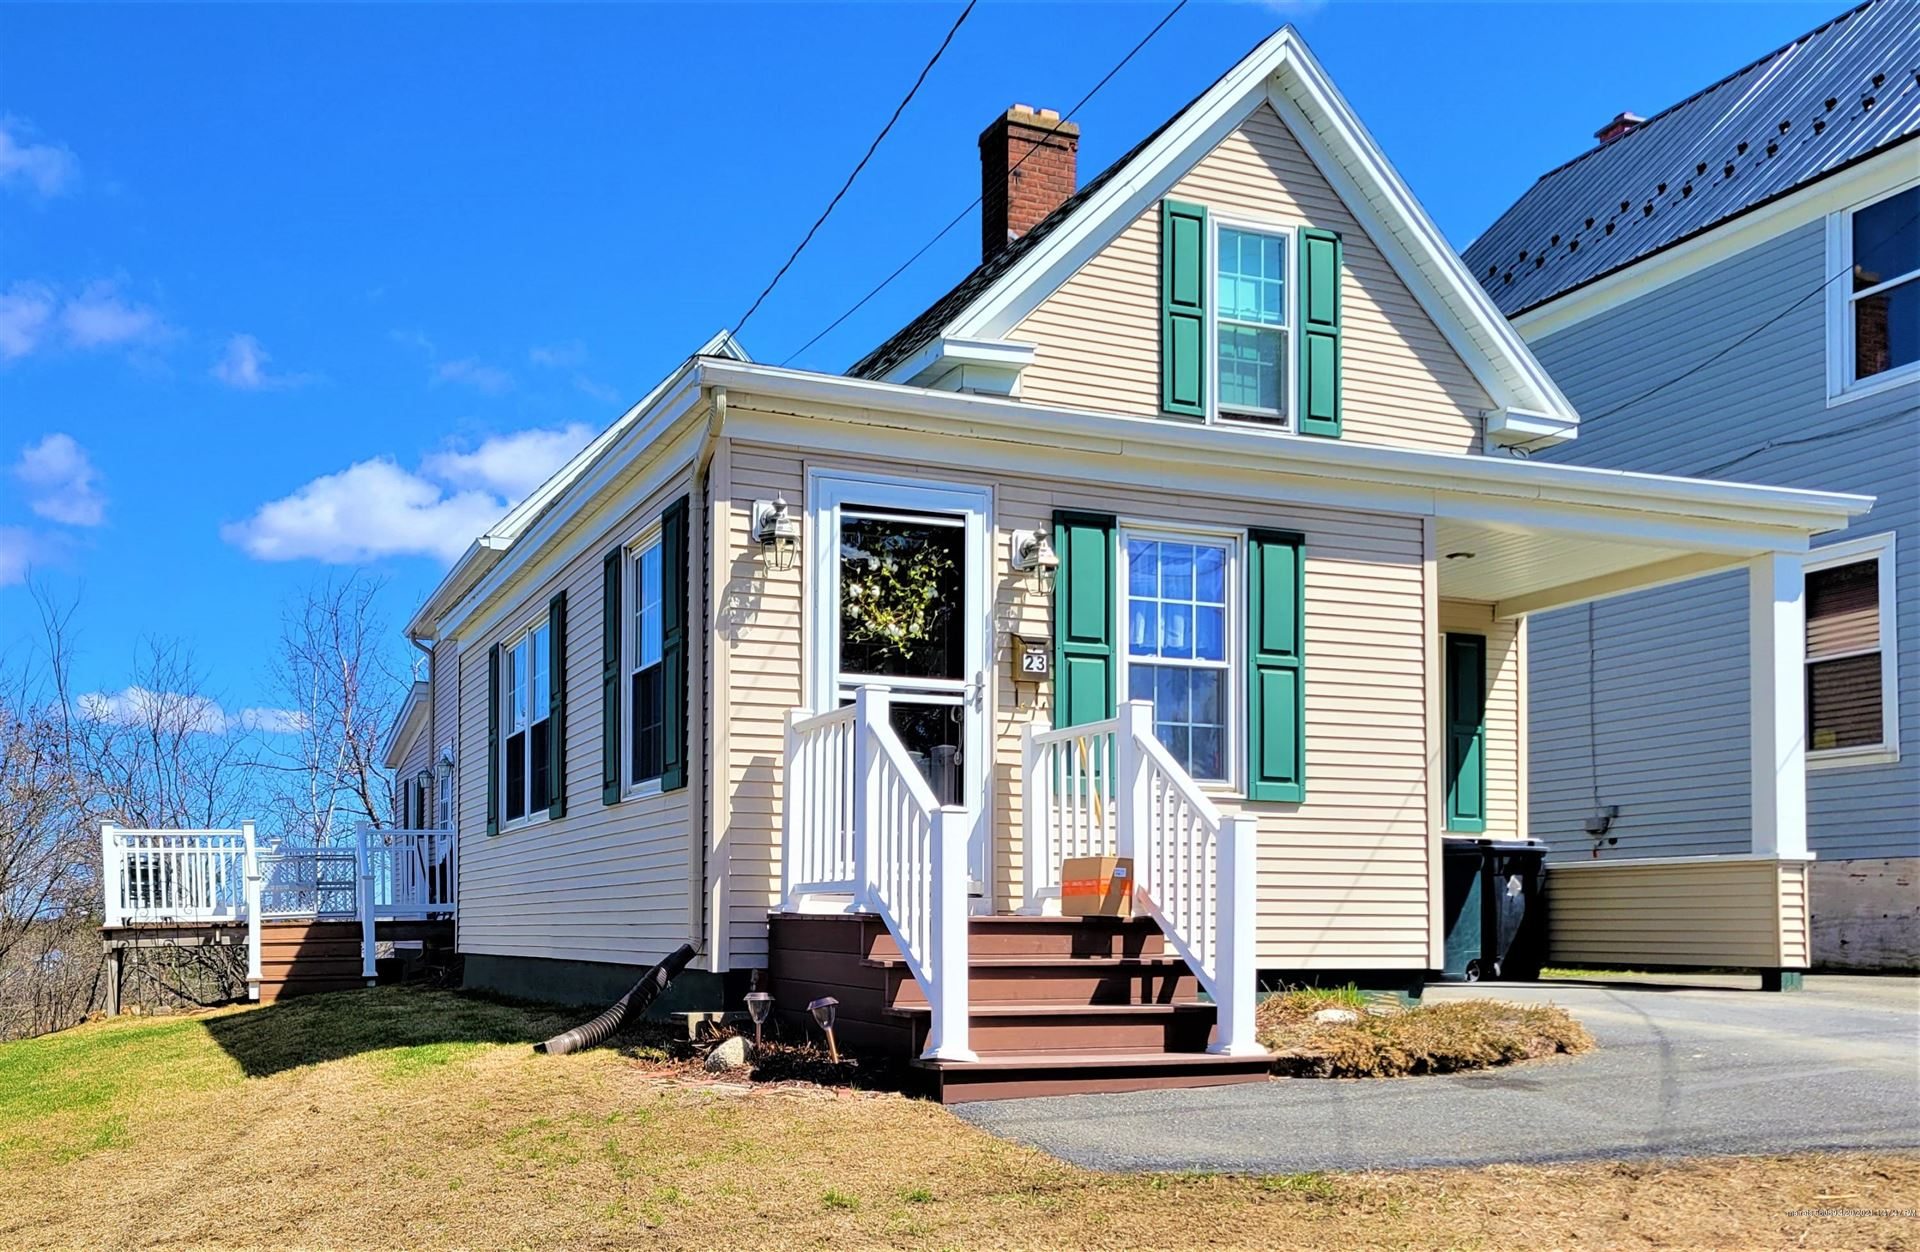 Photo of 23 Fort Hill Street, Fort Fairfield, ME 04742 (MLS # 1480134)